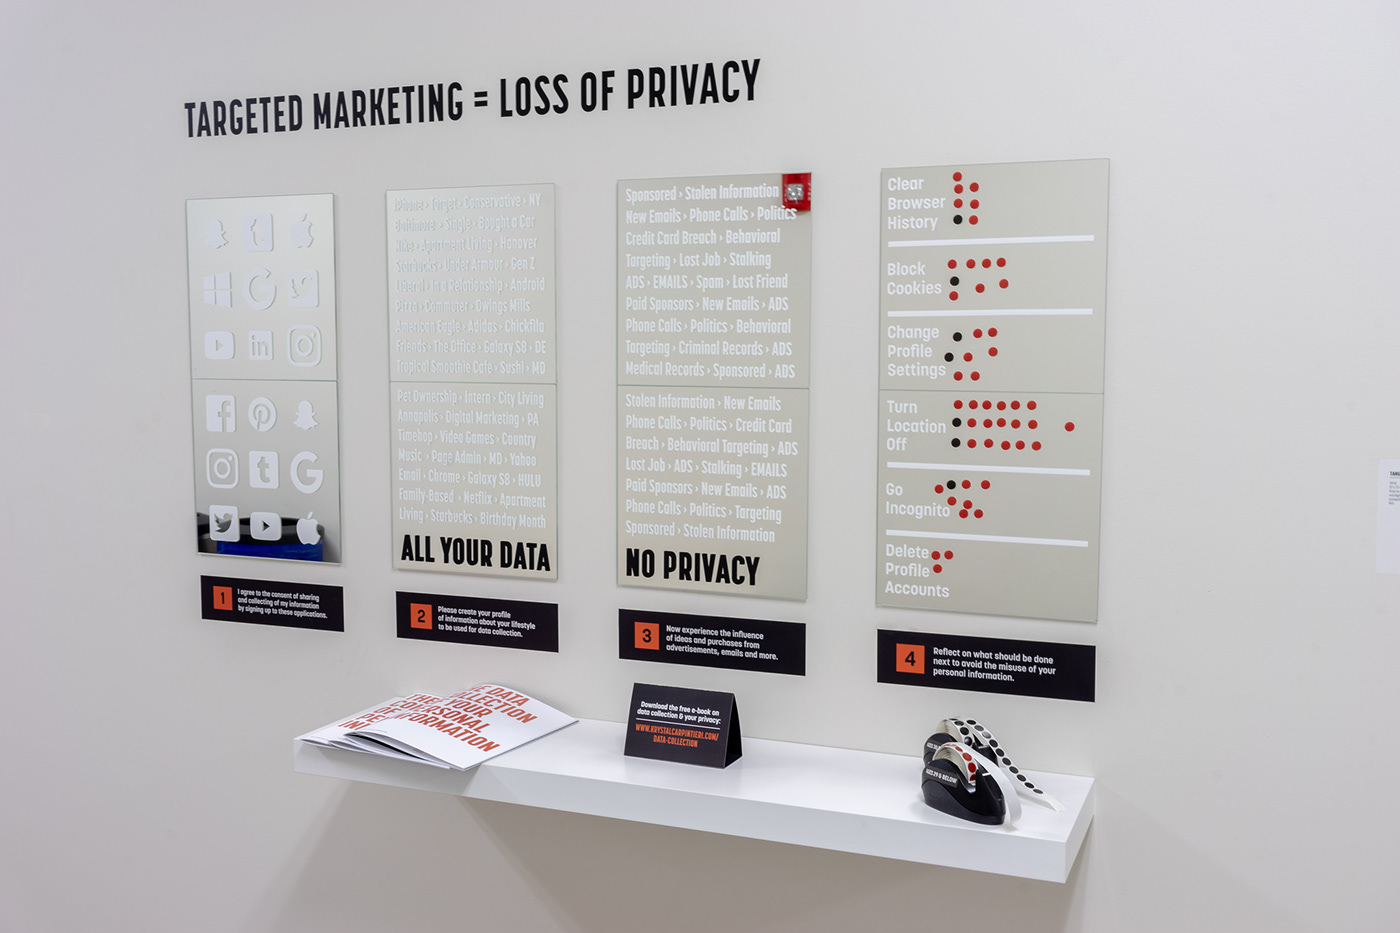 Data privacy Capstone data collection Targeted Marketing information infographic ebook advertisements